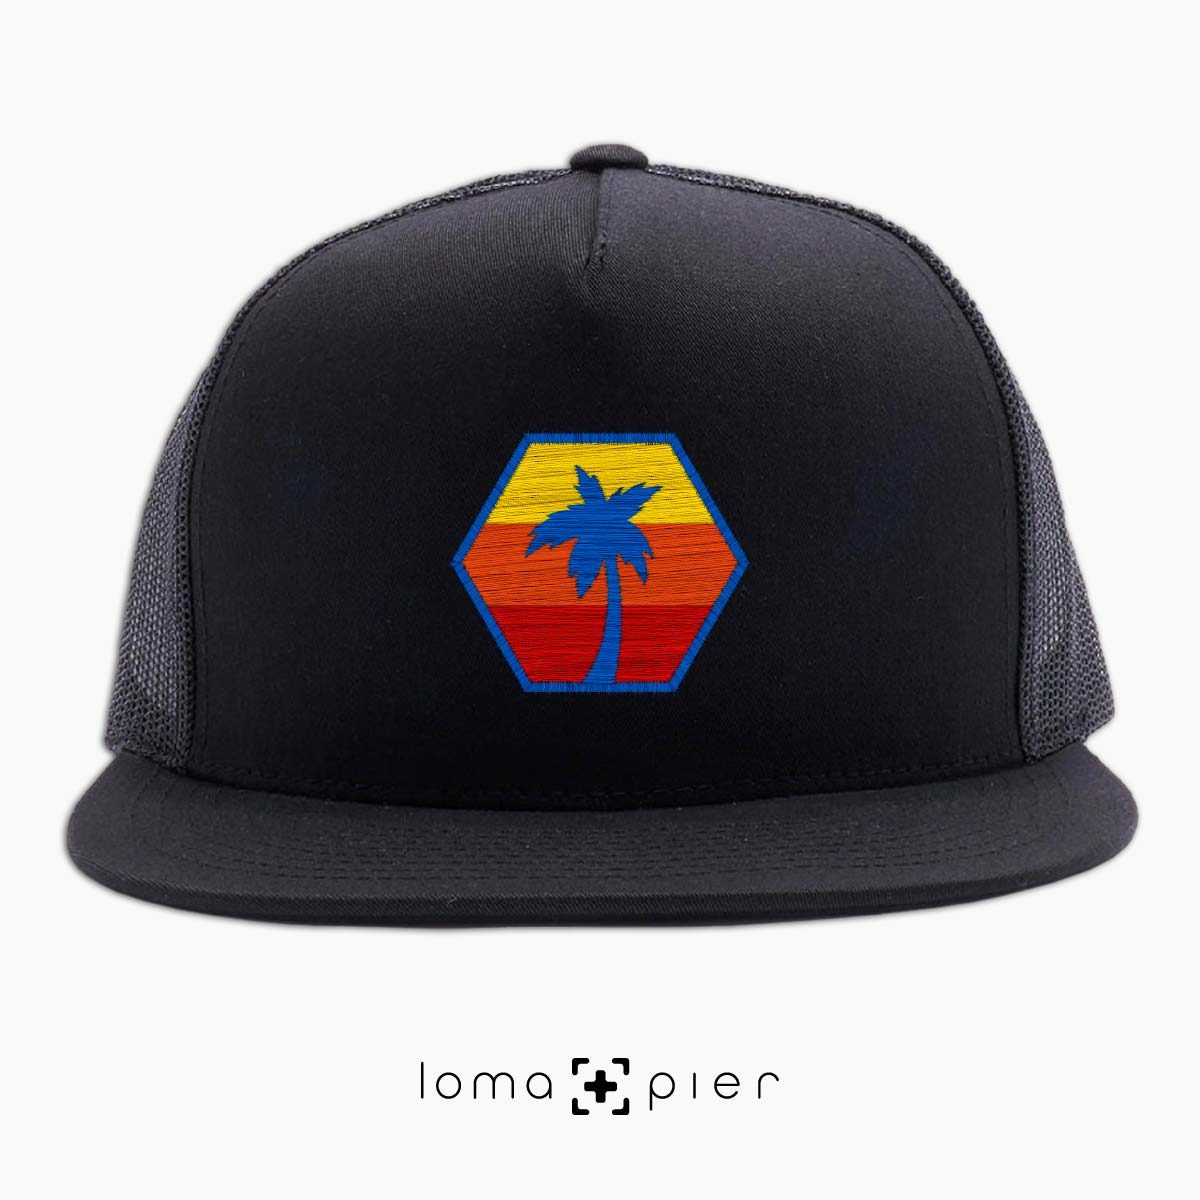 HEXAGON TO THE BEACH netback hat in black by loma+pier hat store